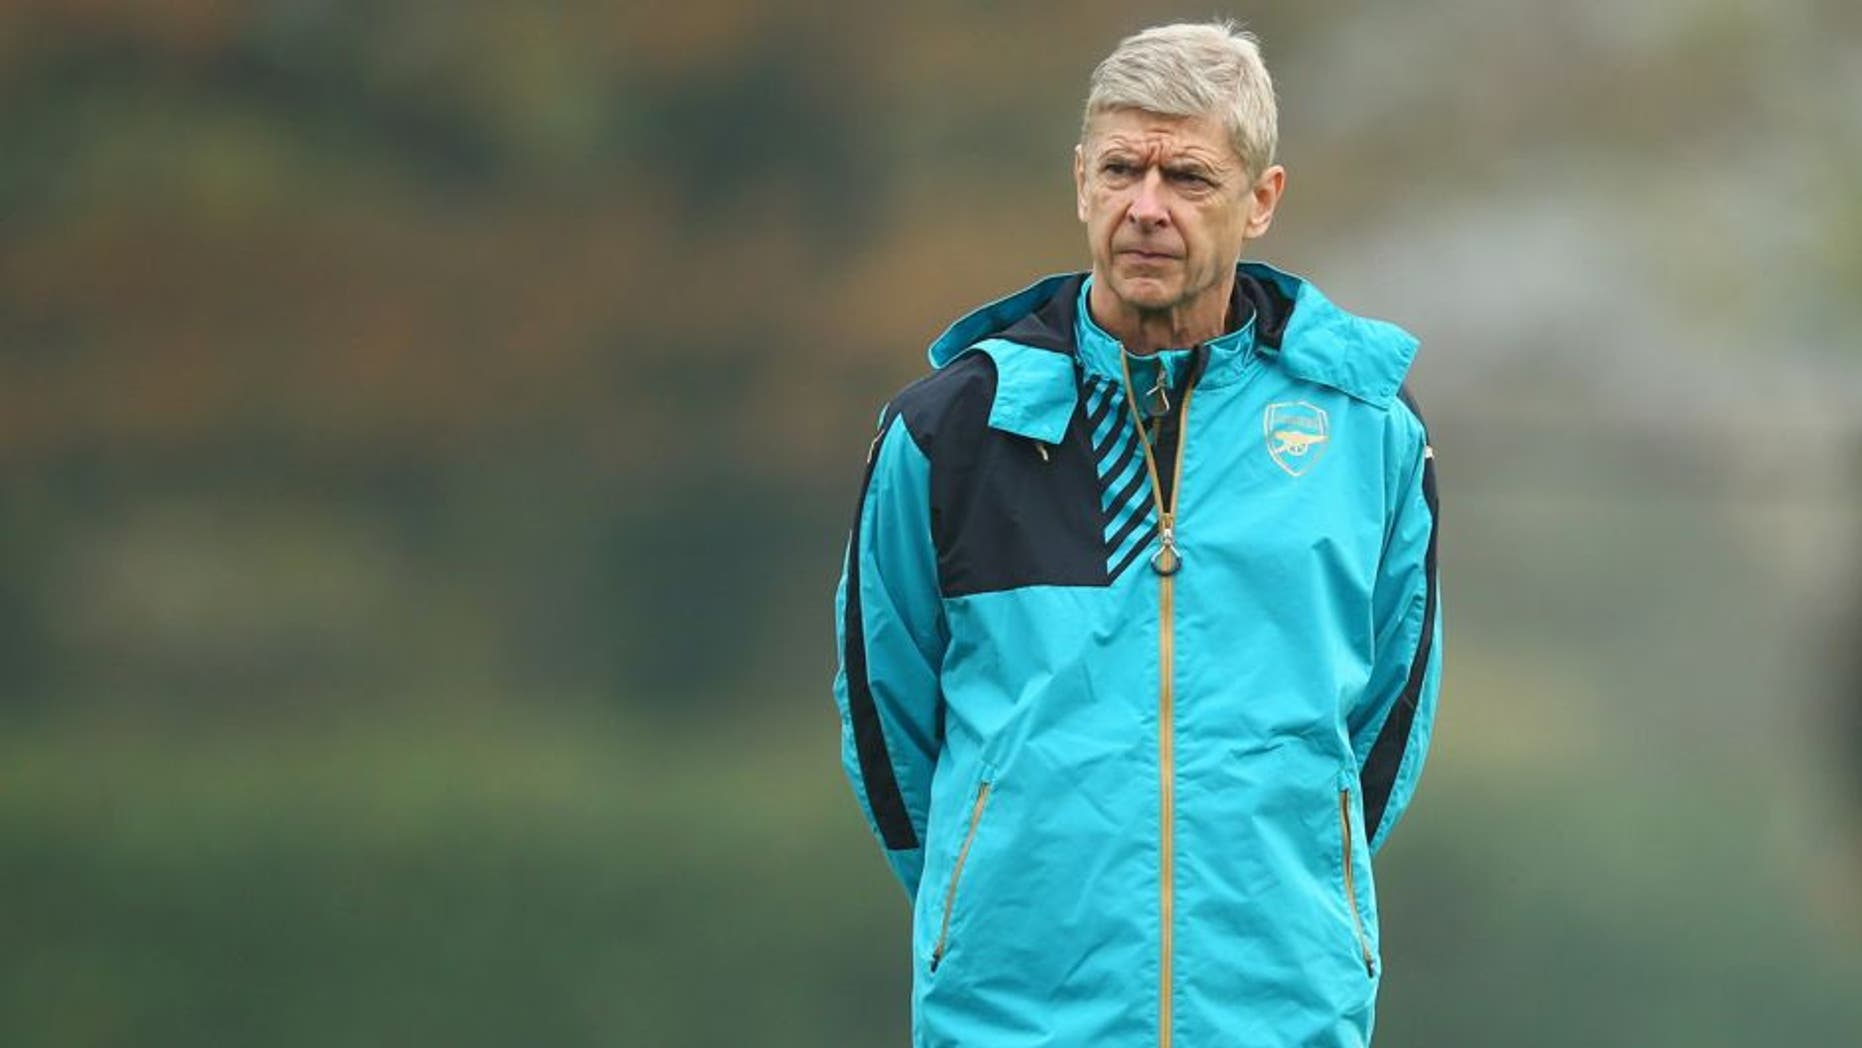 ST ALBANS, ENGLAND - NOVEMBER 03: Arsene Wenger manager of Arsenal looks on during an Arsenal training session on the eve of the UEFA Champions League Group F match against Bayern Munich at London Colney on November 3, 2015 in St Albans, England. (Photo by Dan Mullan/Getty Images)